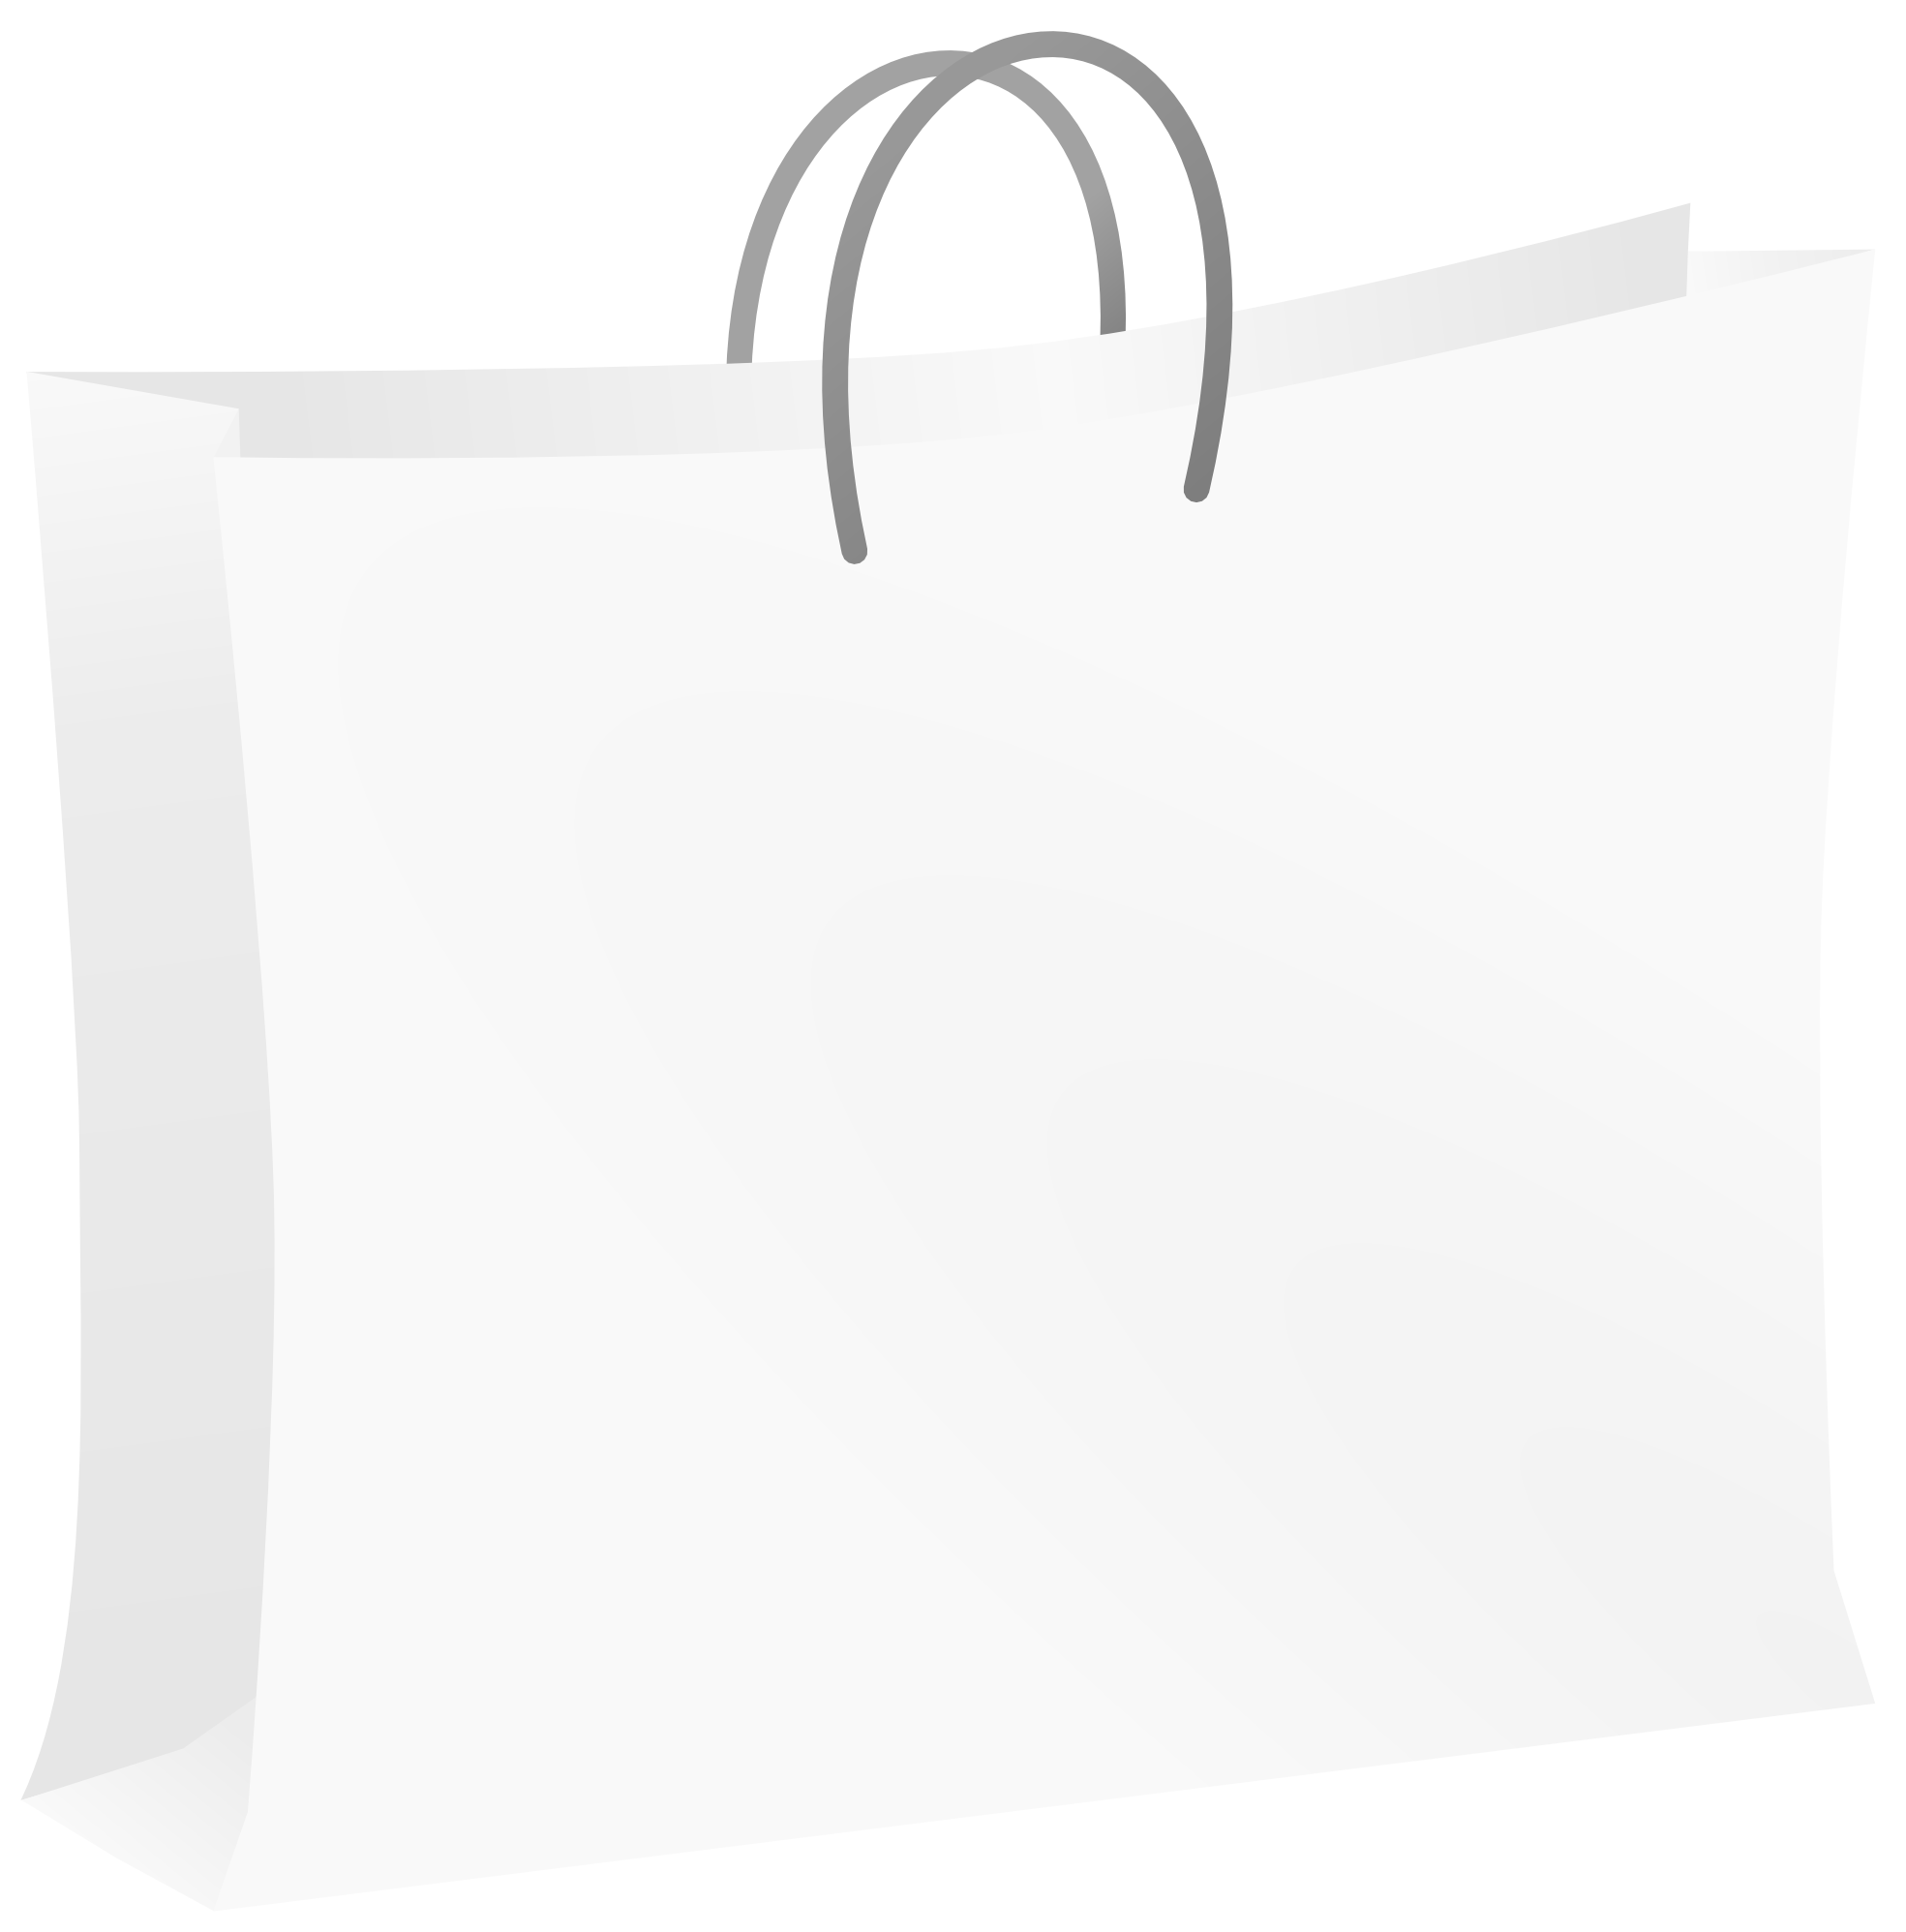 Png grocery bag clipart black and white word art banner transparent download Free Bags Cliparts, Download Free Clip Art, Free Clip Art on ... banner transparent download